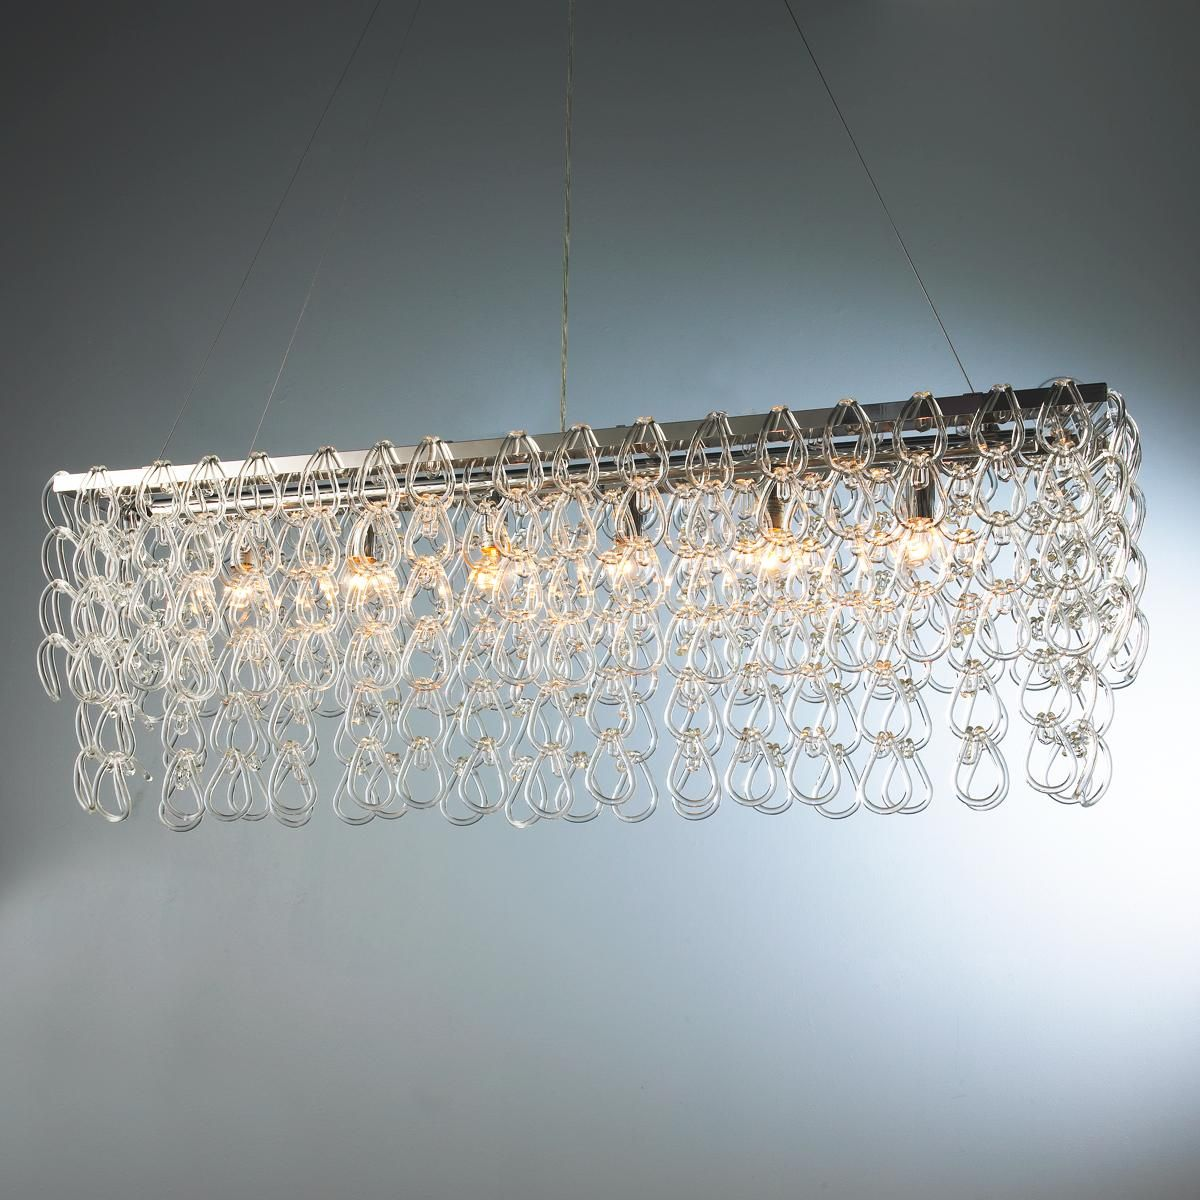 Rectangular Glass Chain Island Chandelier Glass Chain Links Hang From Chrome Bands Creating A Stunning Modern I Chandelier Shades Basement Lighting Chandelier